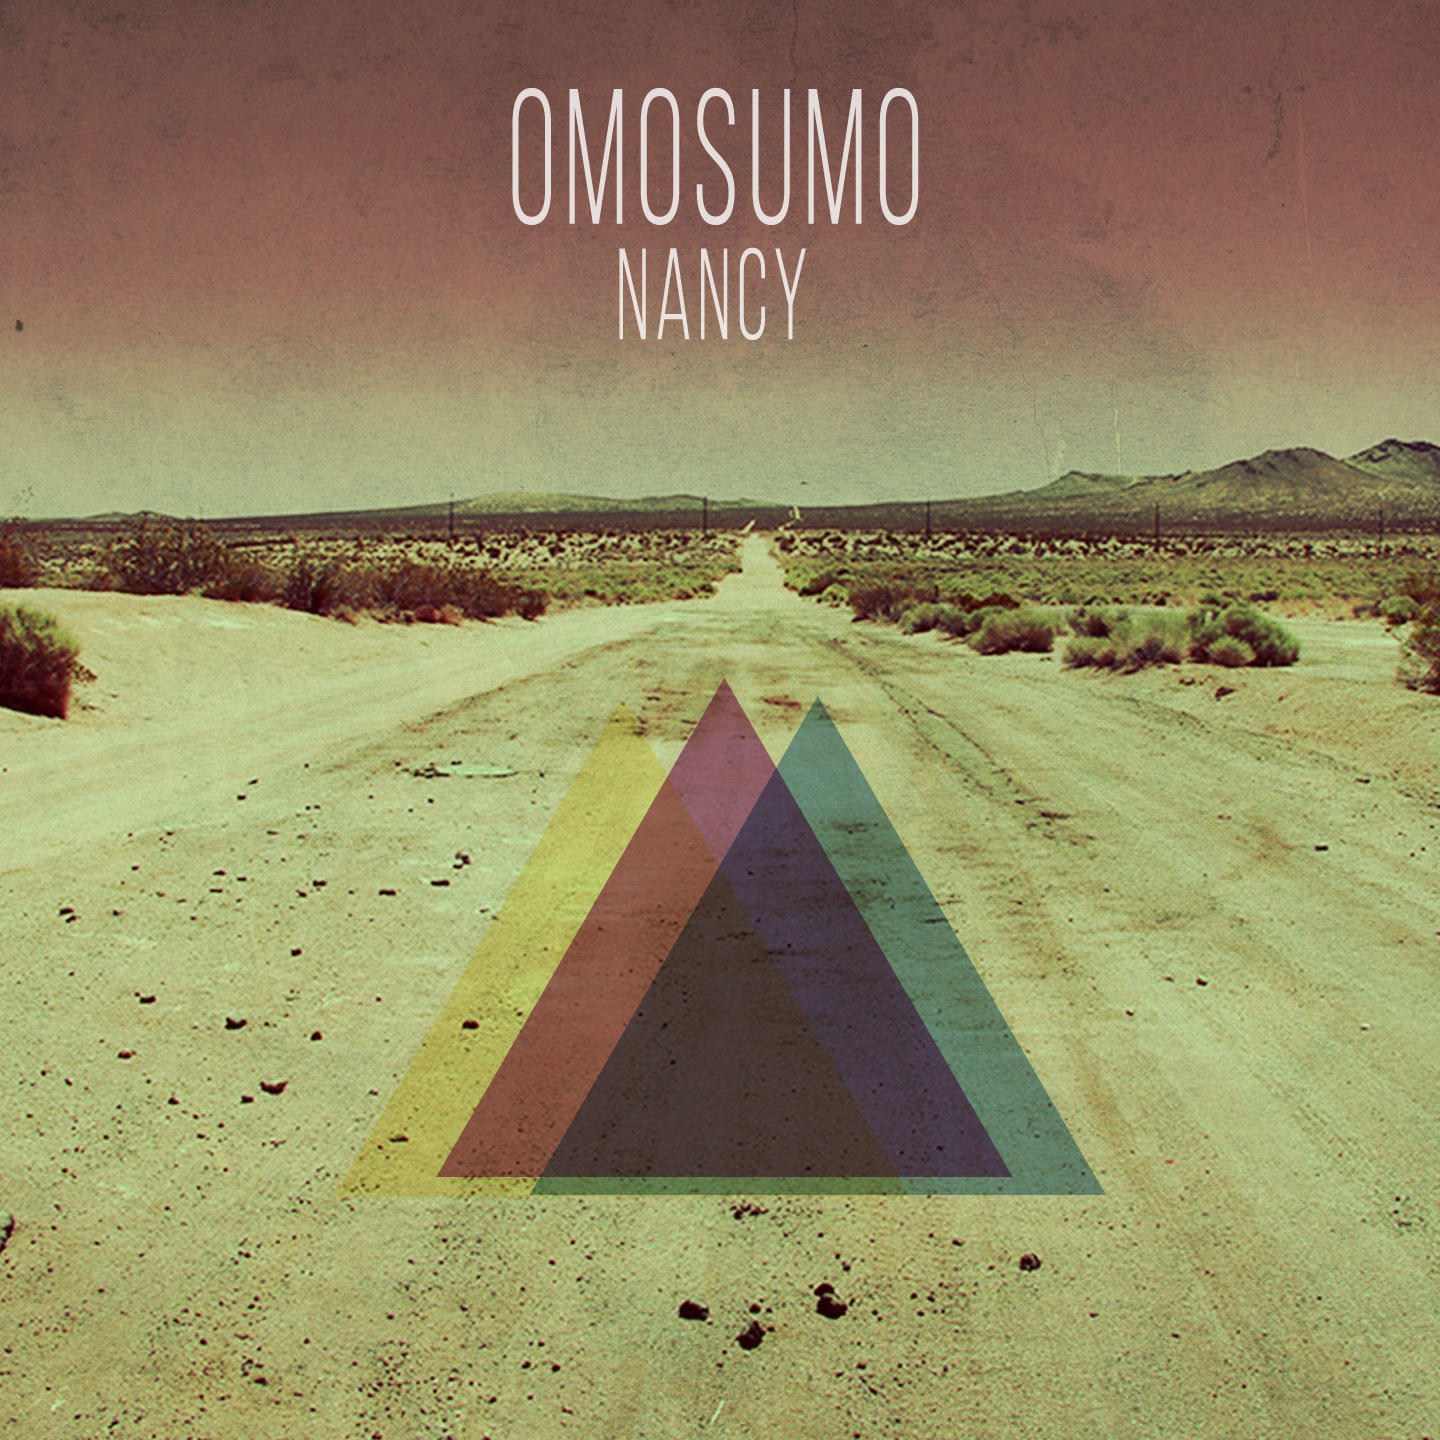 Omosumo_nancy_cover